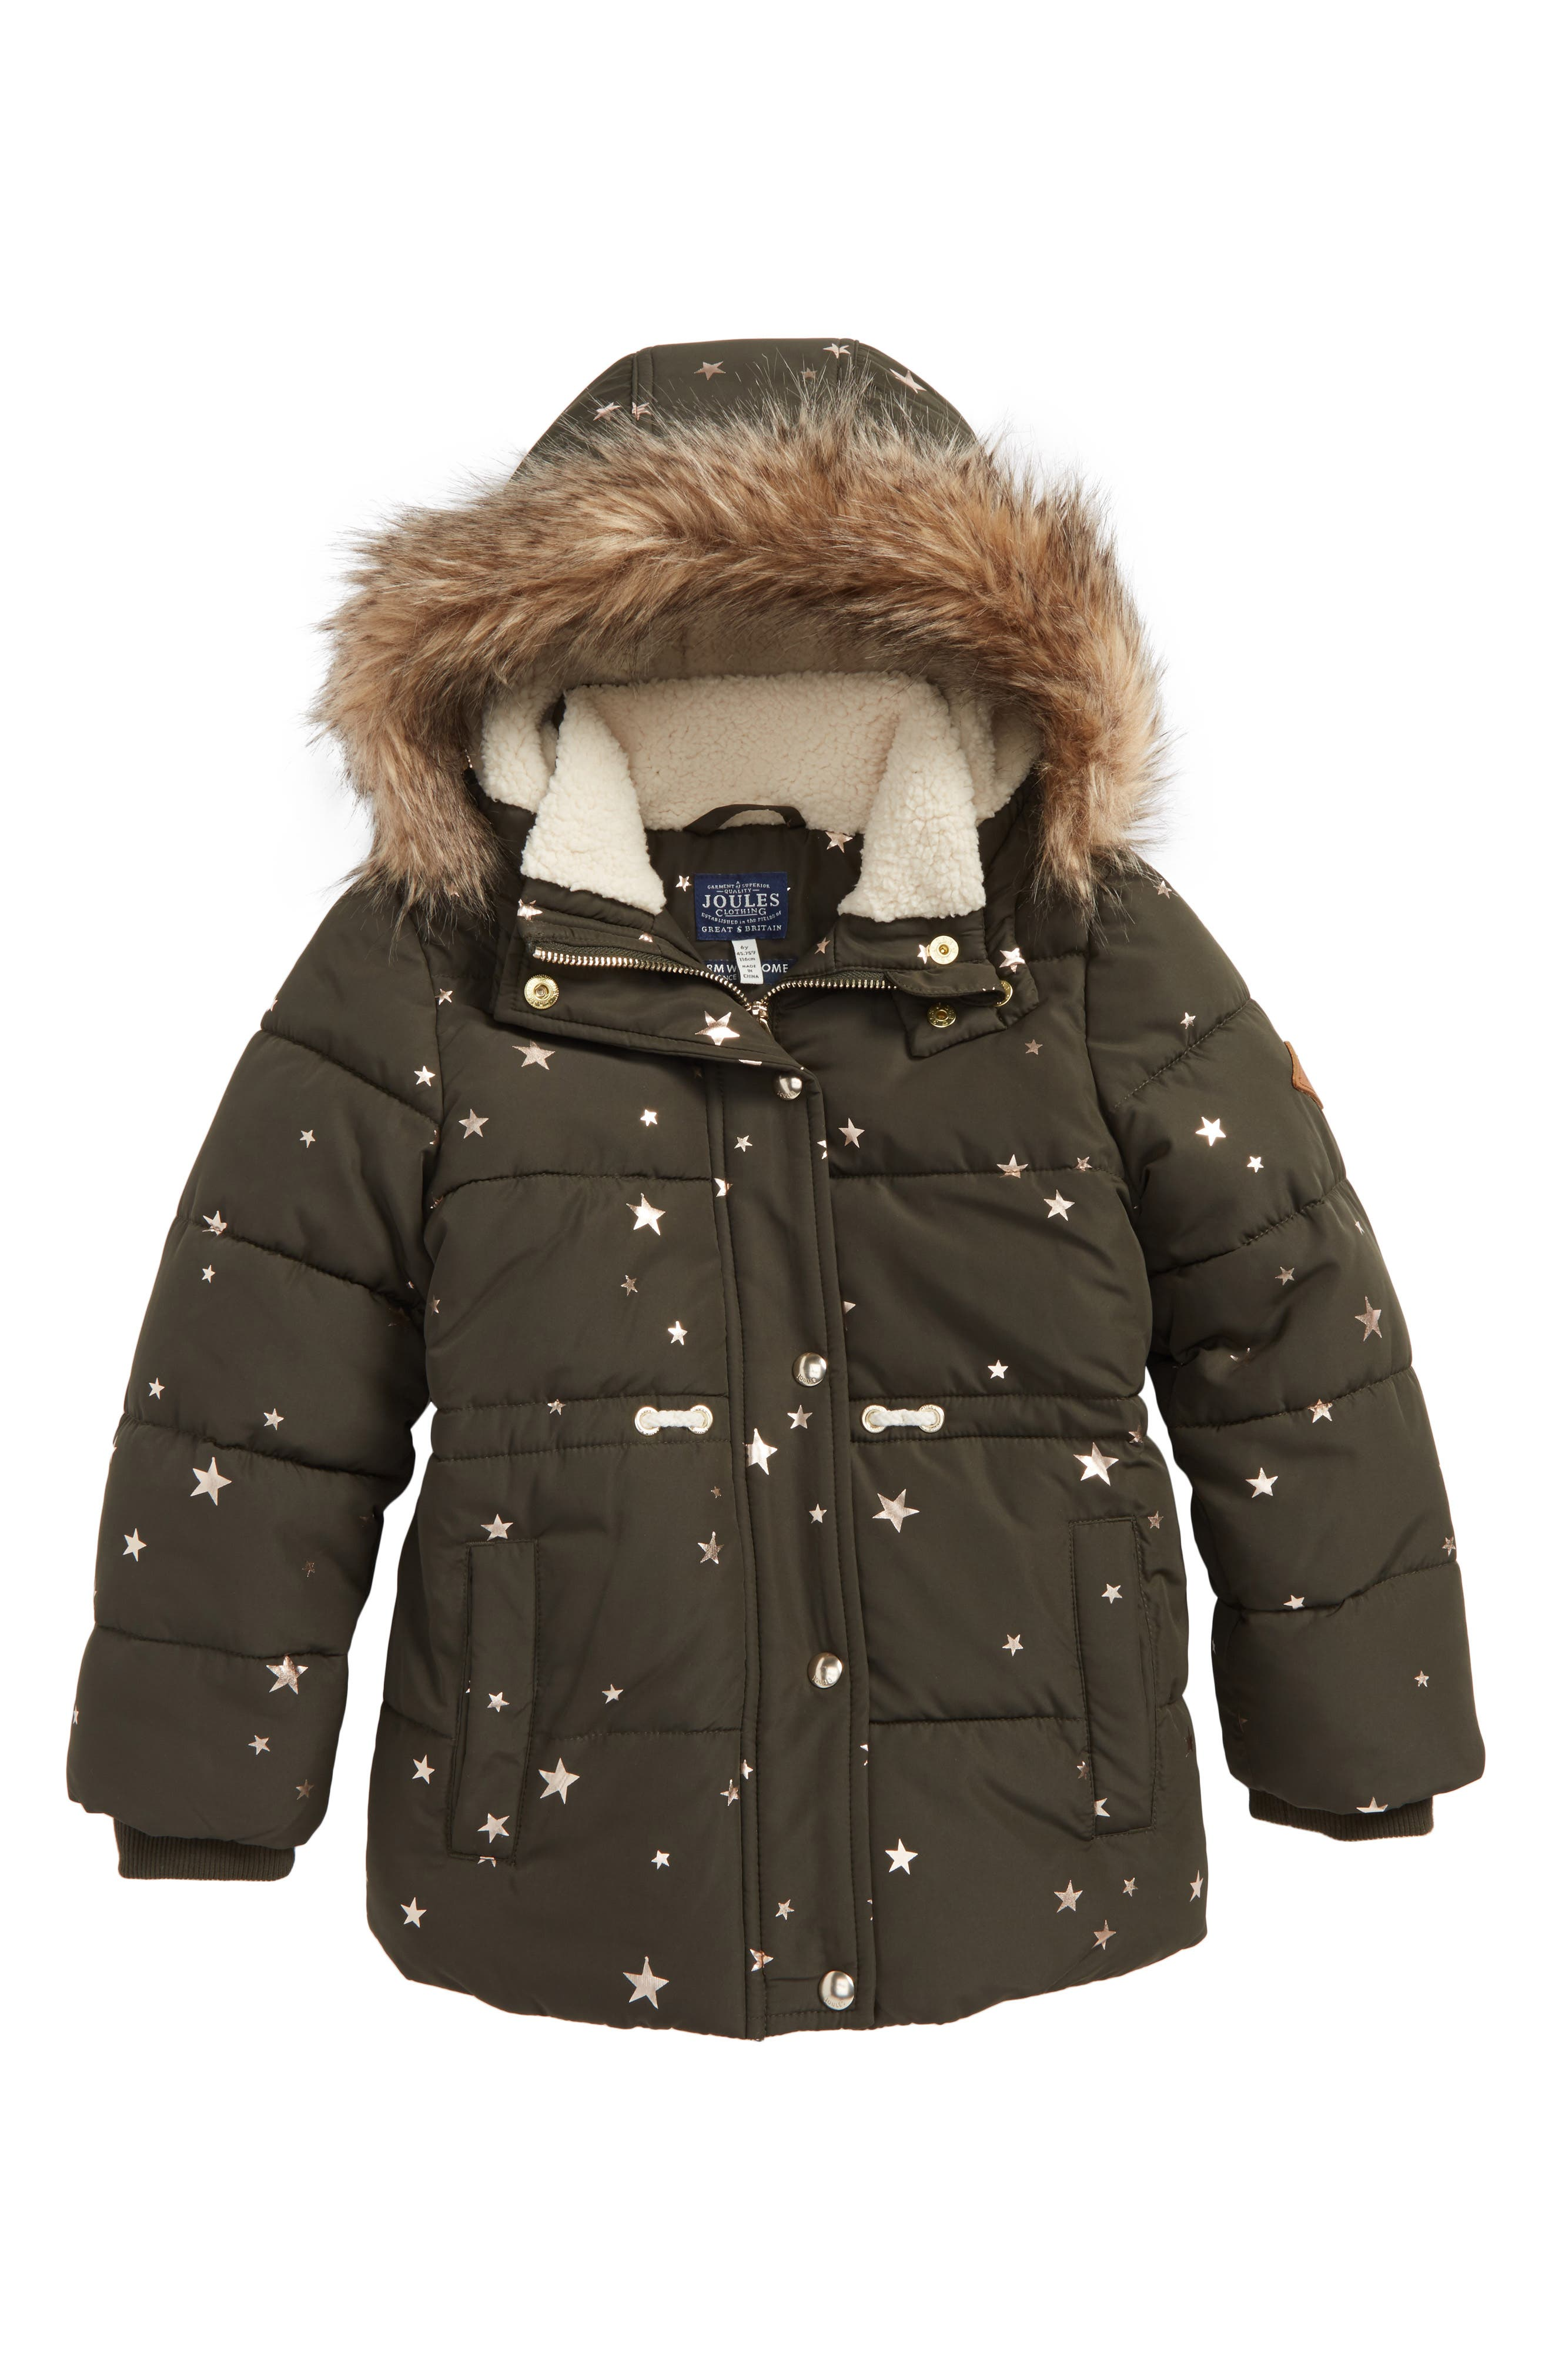 Main Image - Joules Stella Hooded Puffer Jacket (Toddler Girls, Little Girls & Big Girls)